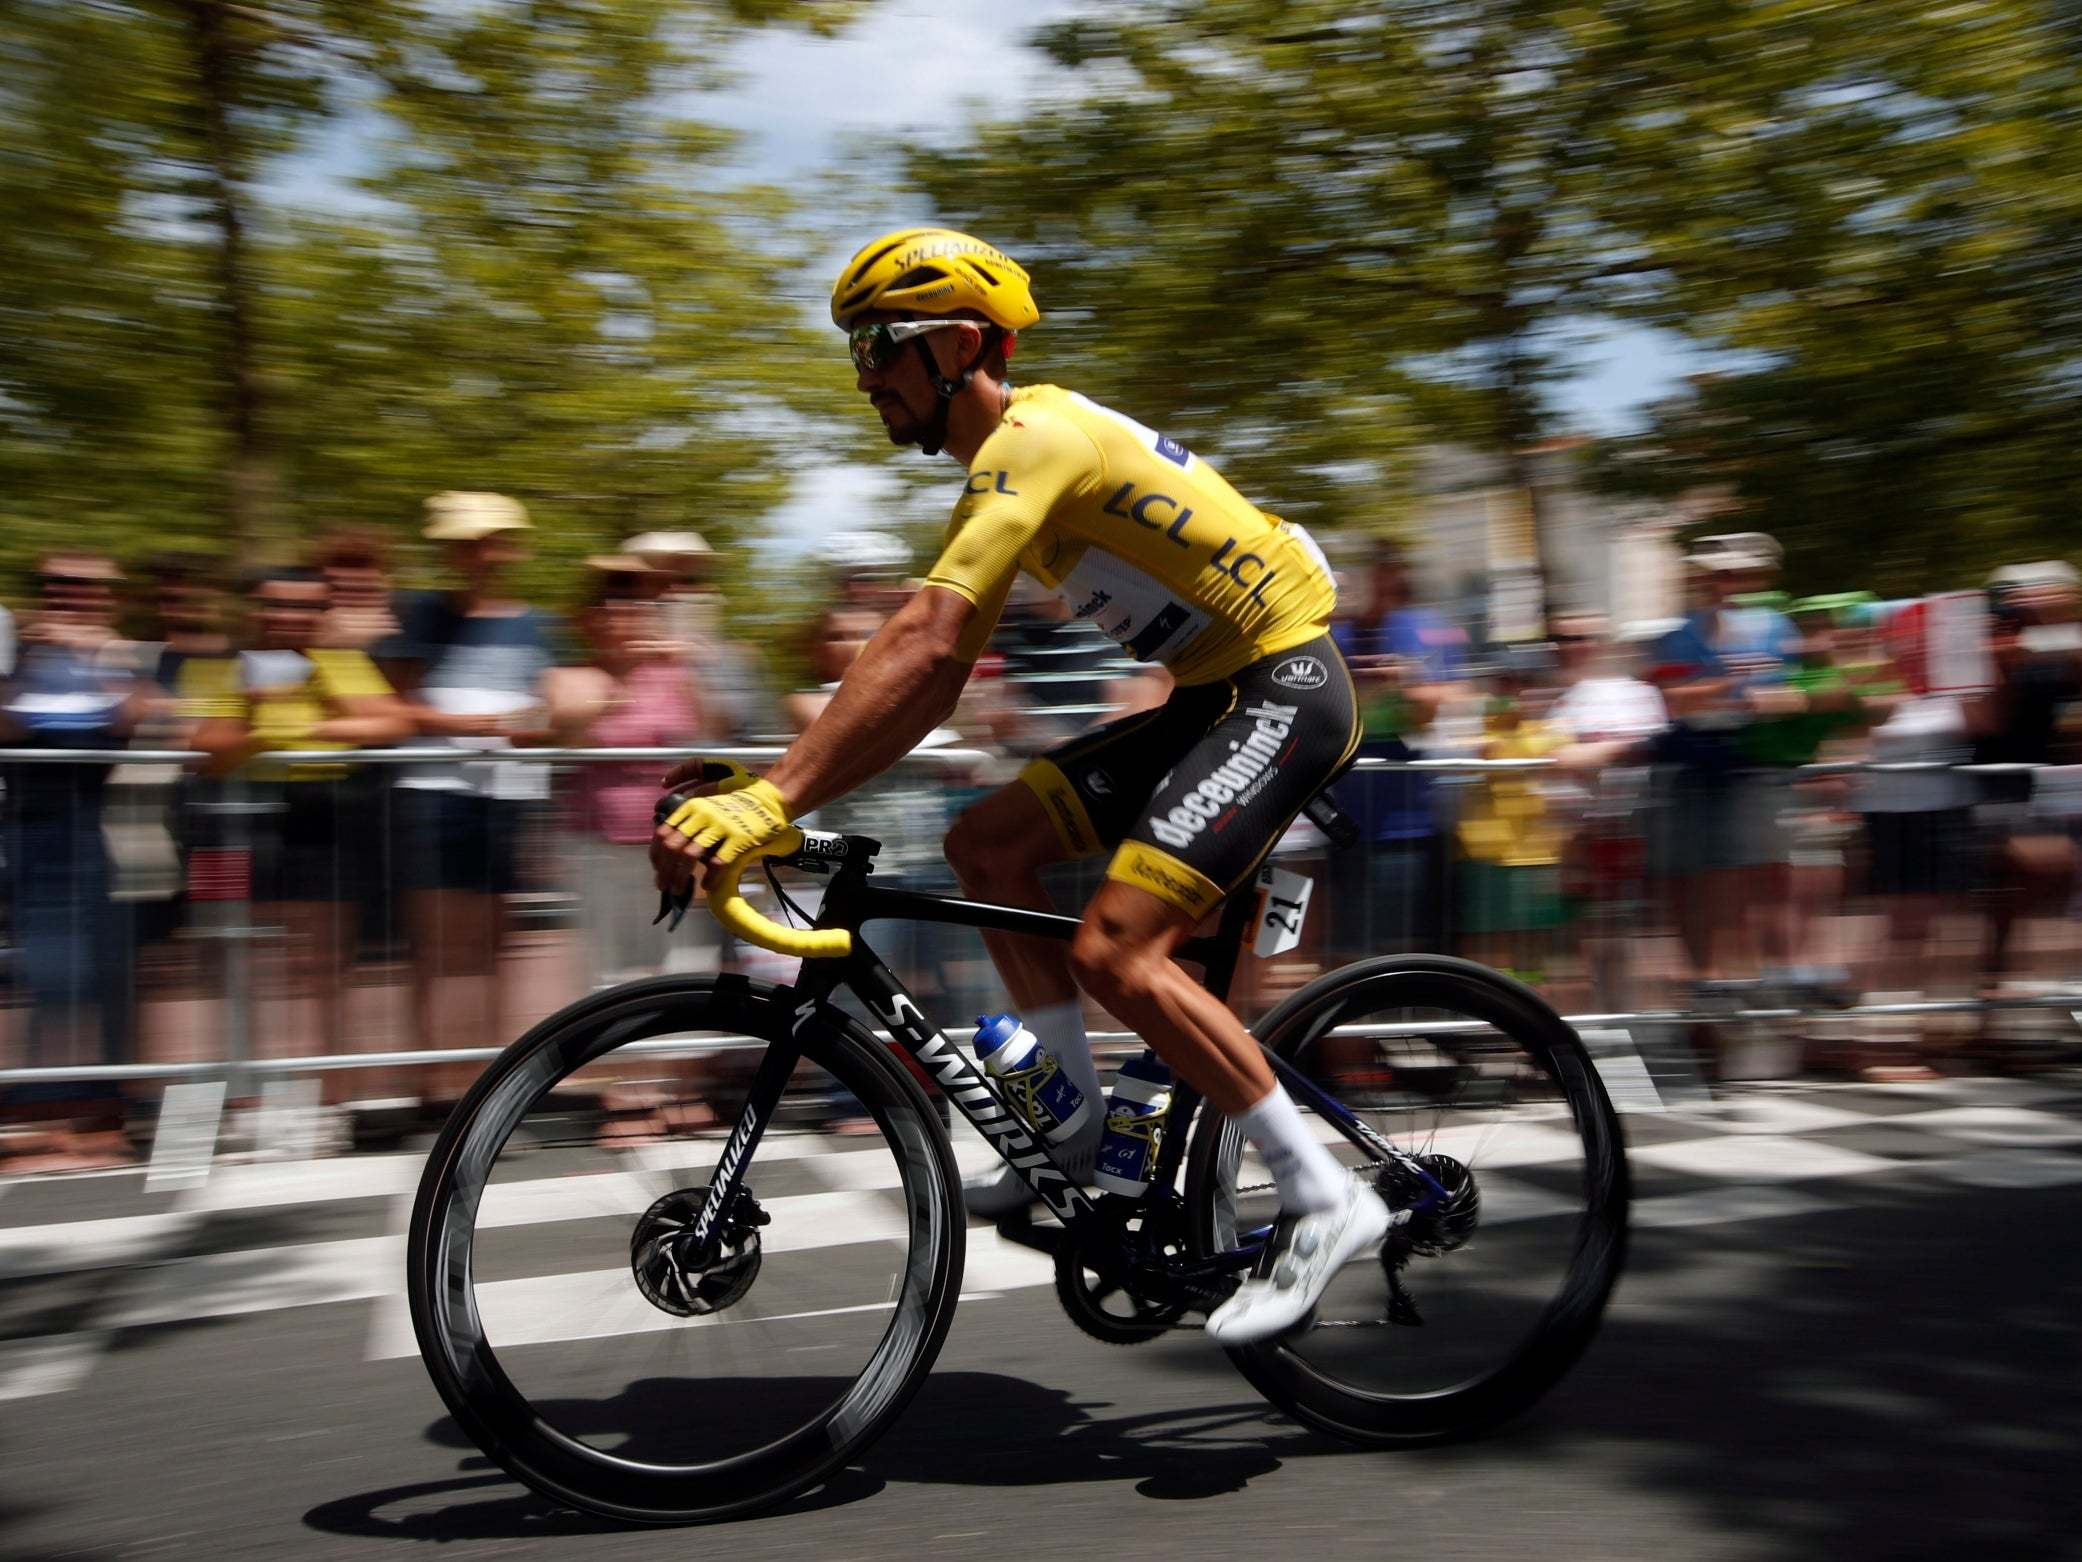 Tour de France LIVE: Stage 11 updates and tracker on route to Toulouse as race heads for bunch sprint